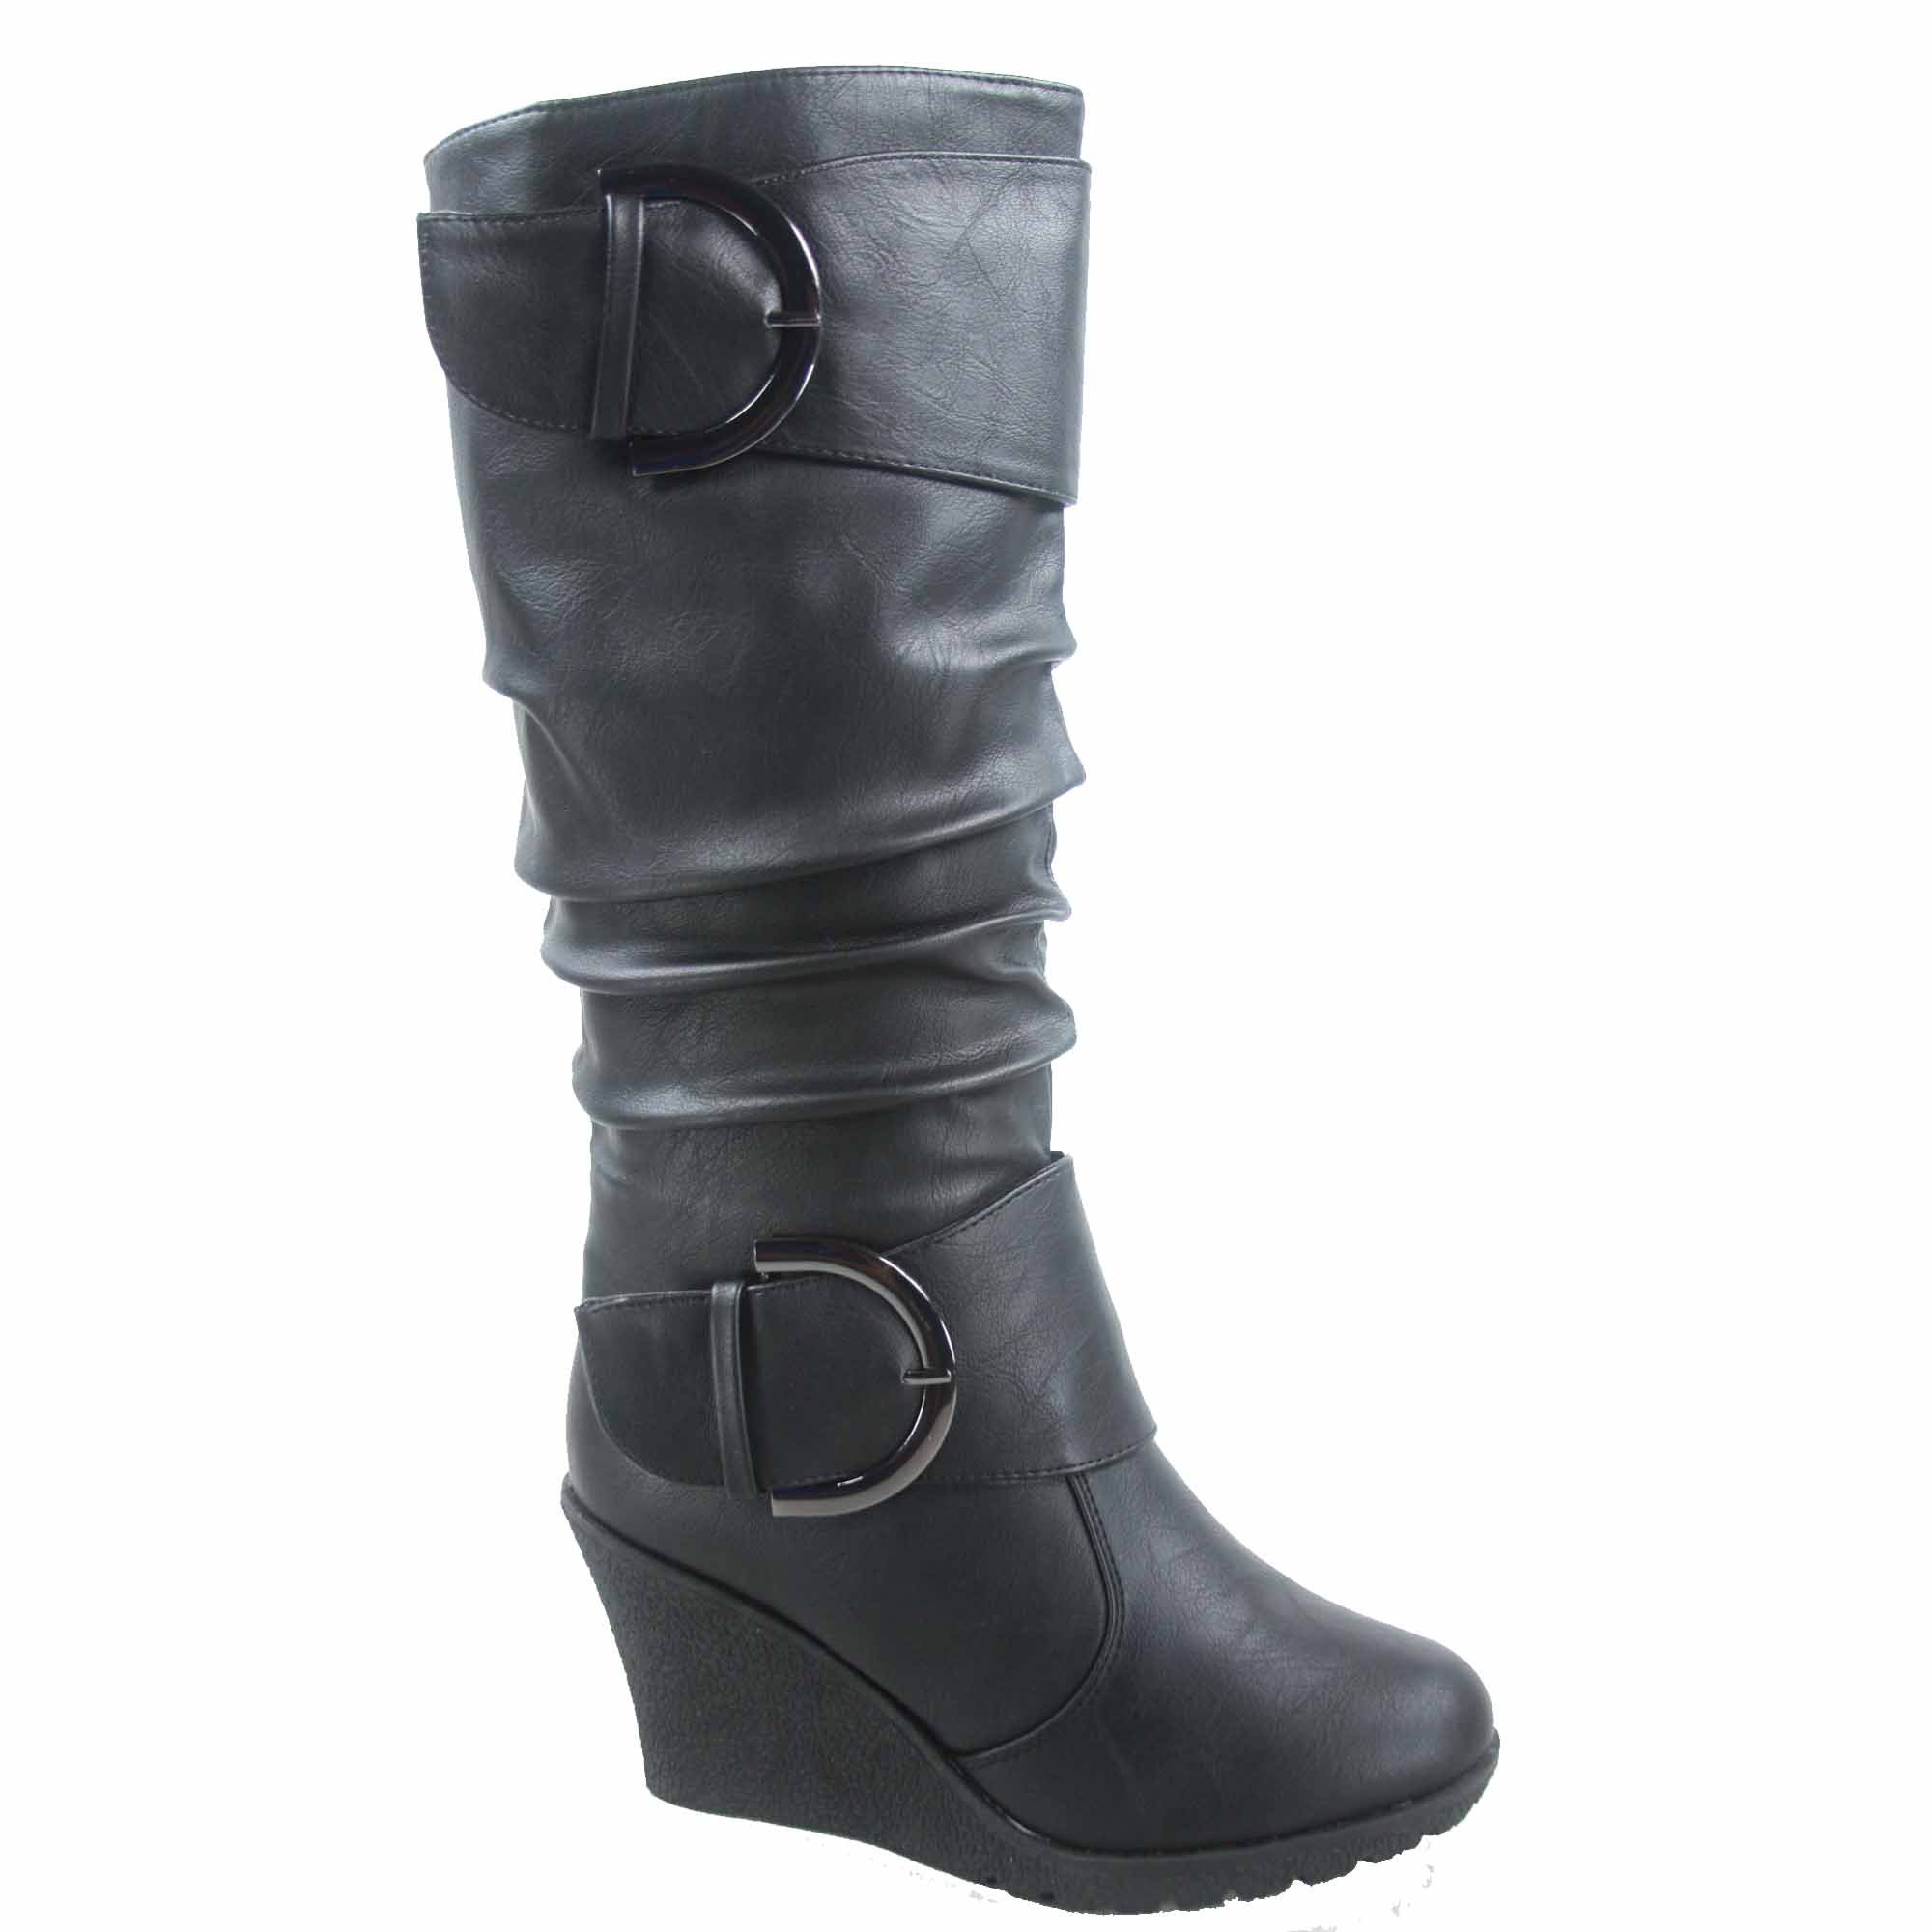 Top Moda Pure-65 Women's Fashion Round Toe Slouch Buckle Wedge Mid Calf Boot Shoes (10, Black)